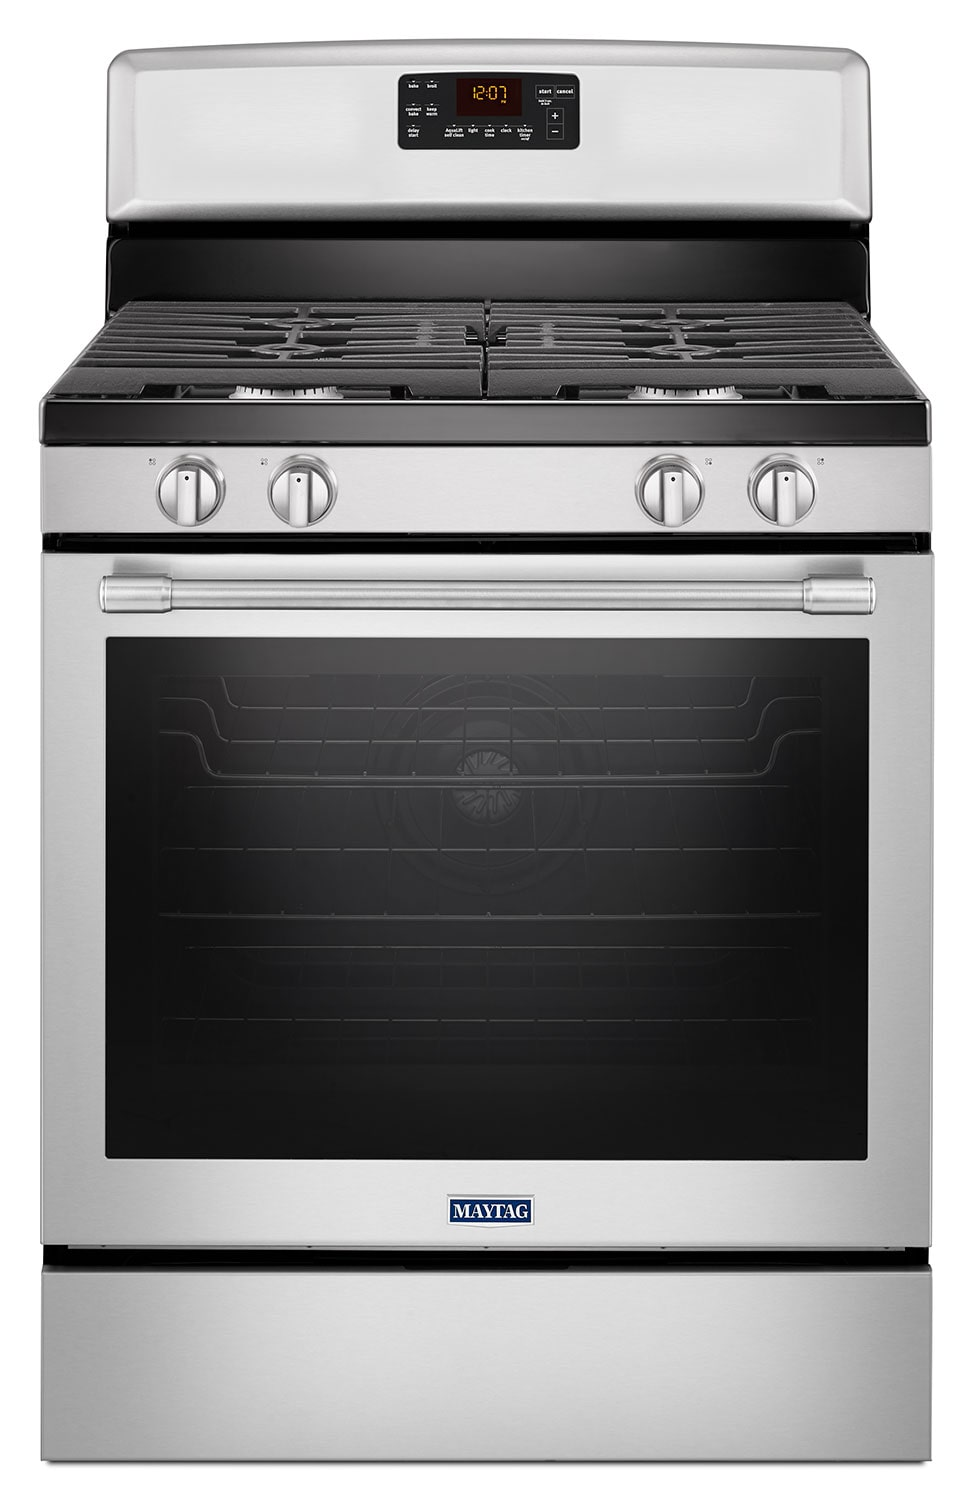 Cooking Products - Maytag Stainless Steel Freestanding Gas Convection Range (5.8 Cu. Ft.) - MGR8650FZ